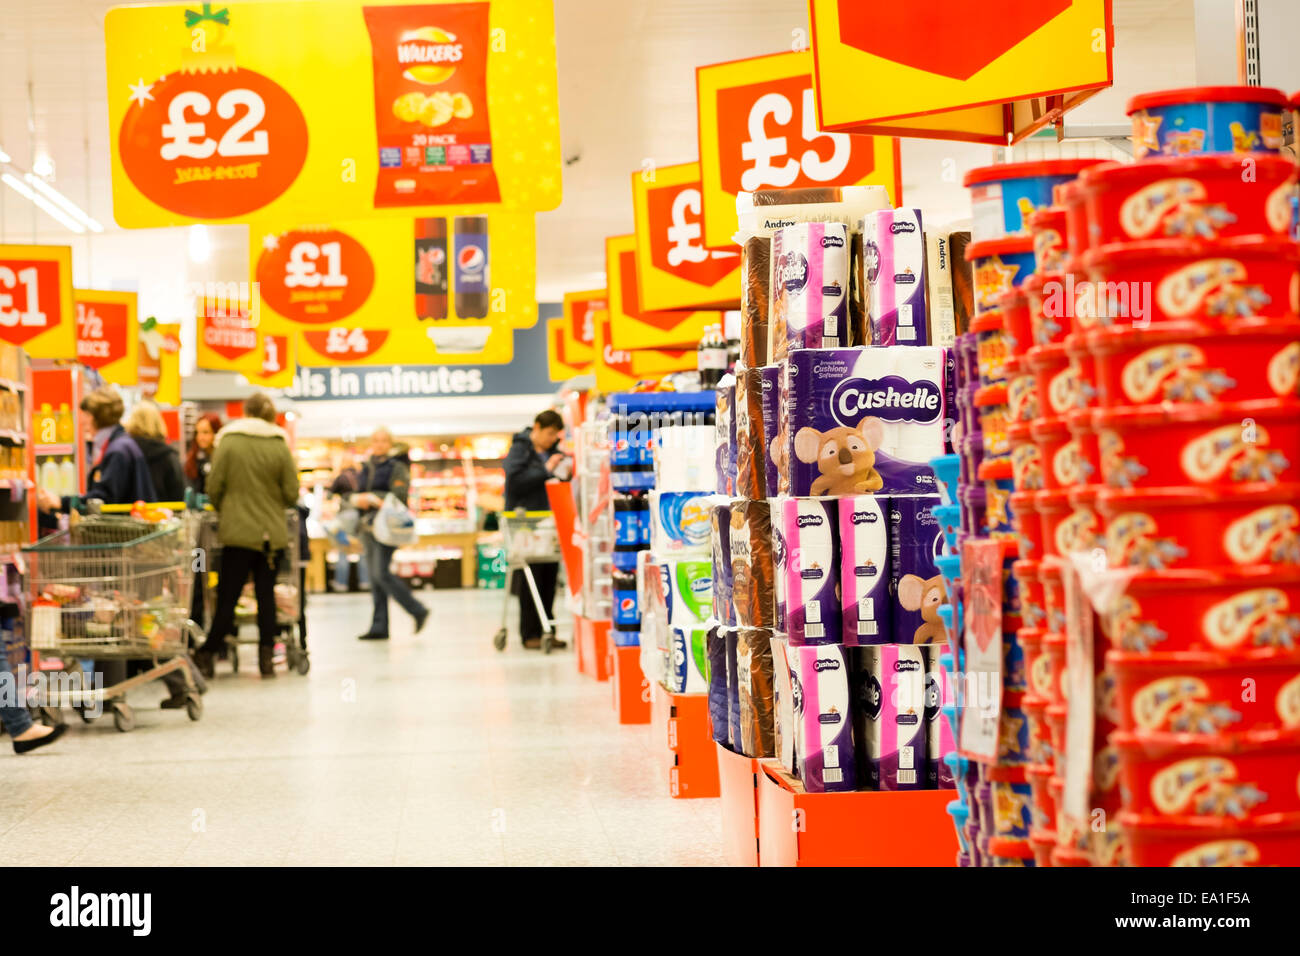 Supermarket aisle in a Morrison's store, UK. - Stock Image